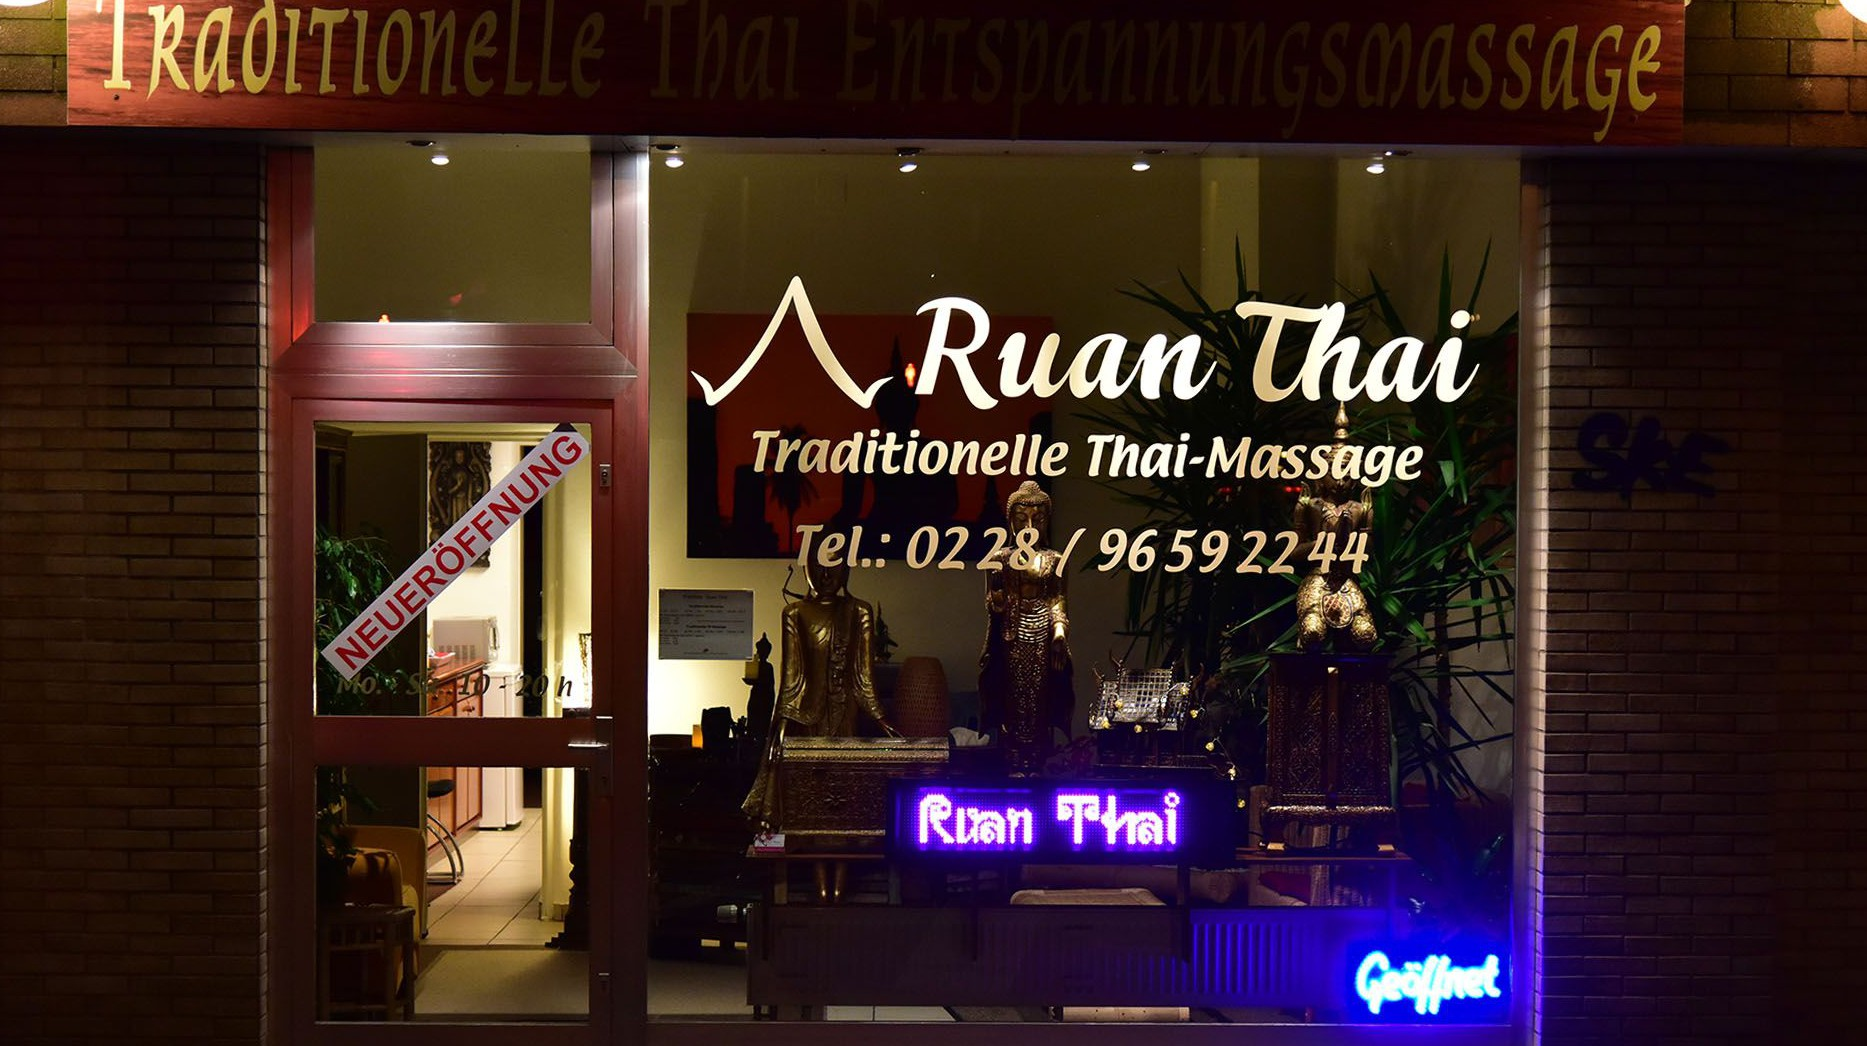 Traditionelle Thaimassage Ruan-Thai-Bonn Impressionen (12)